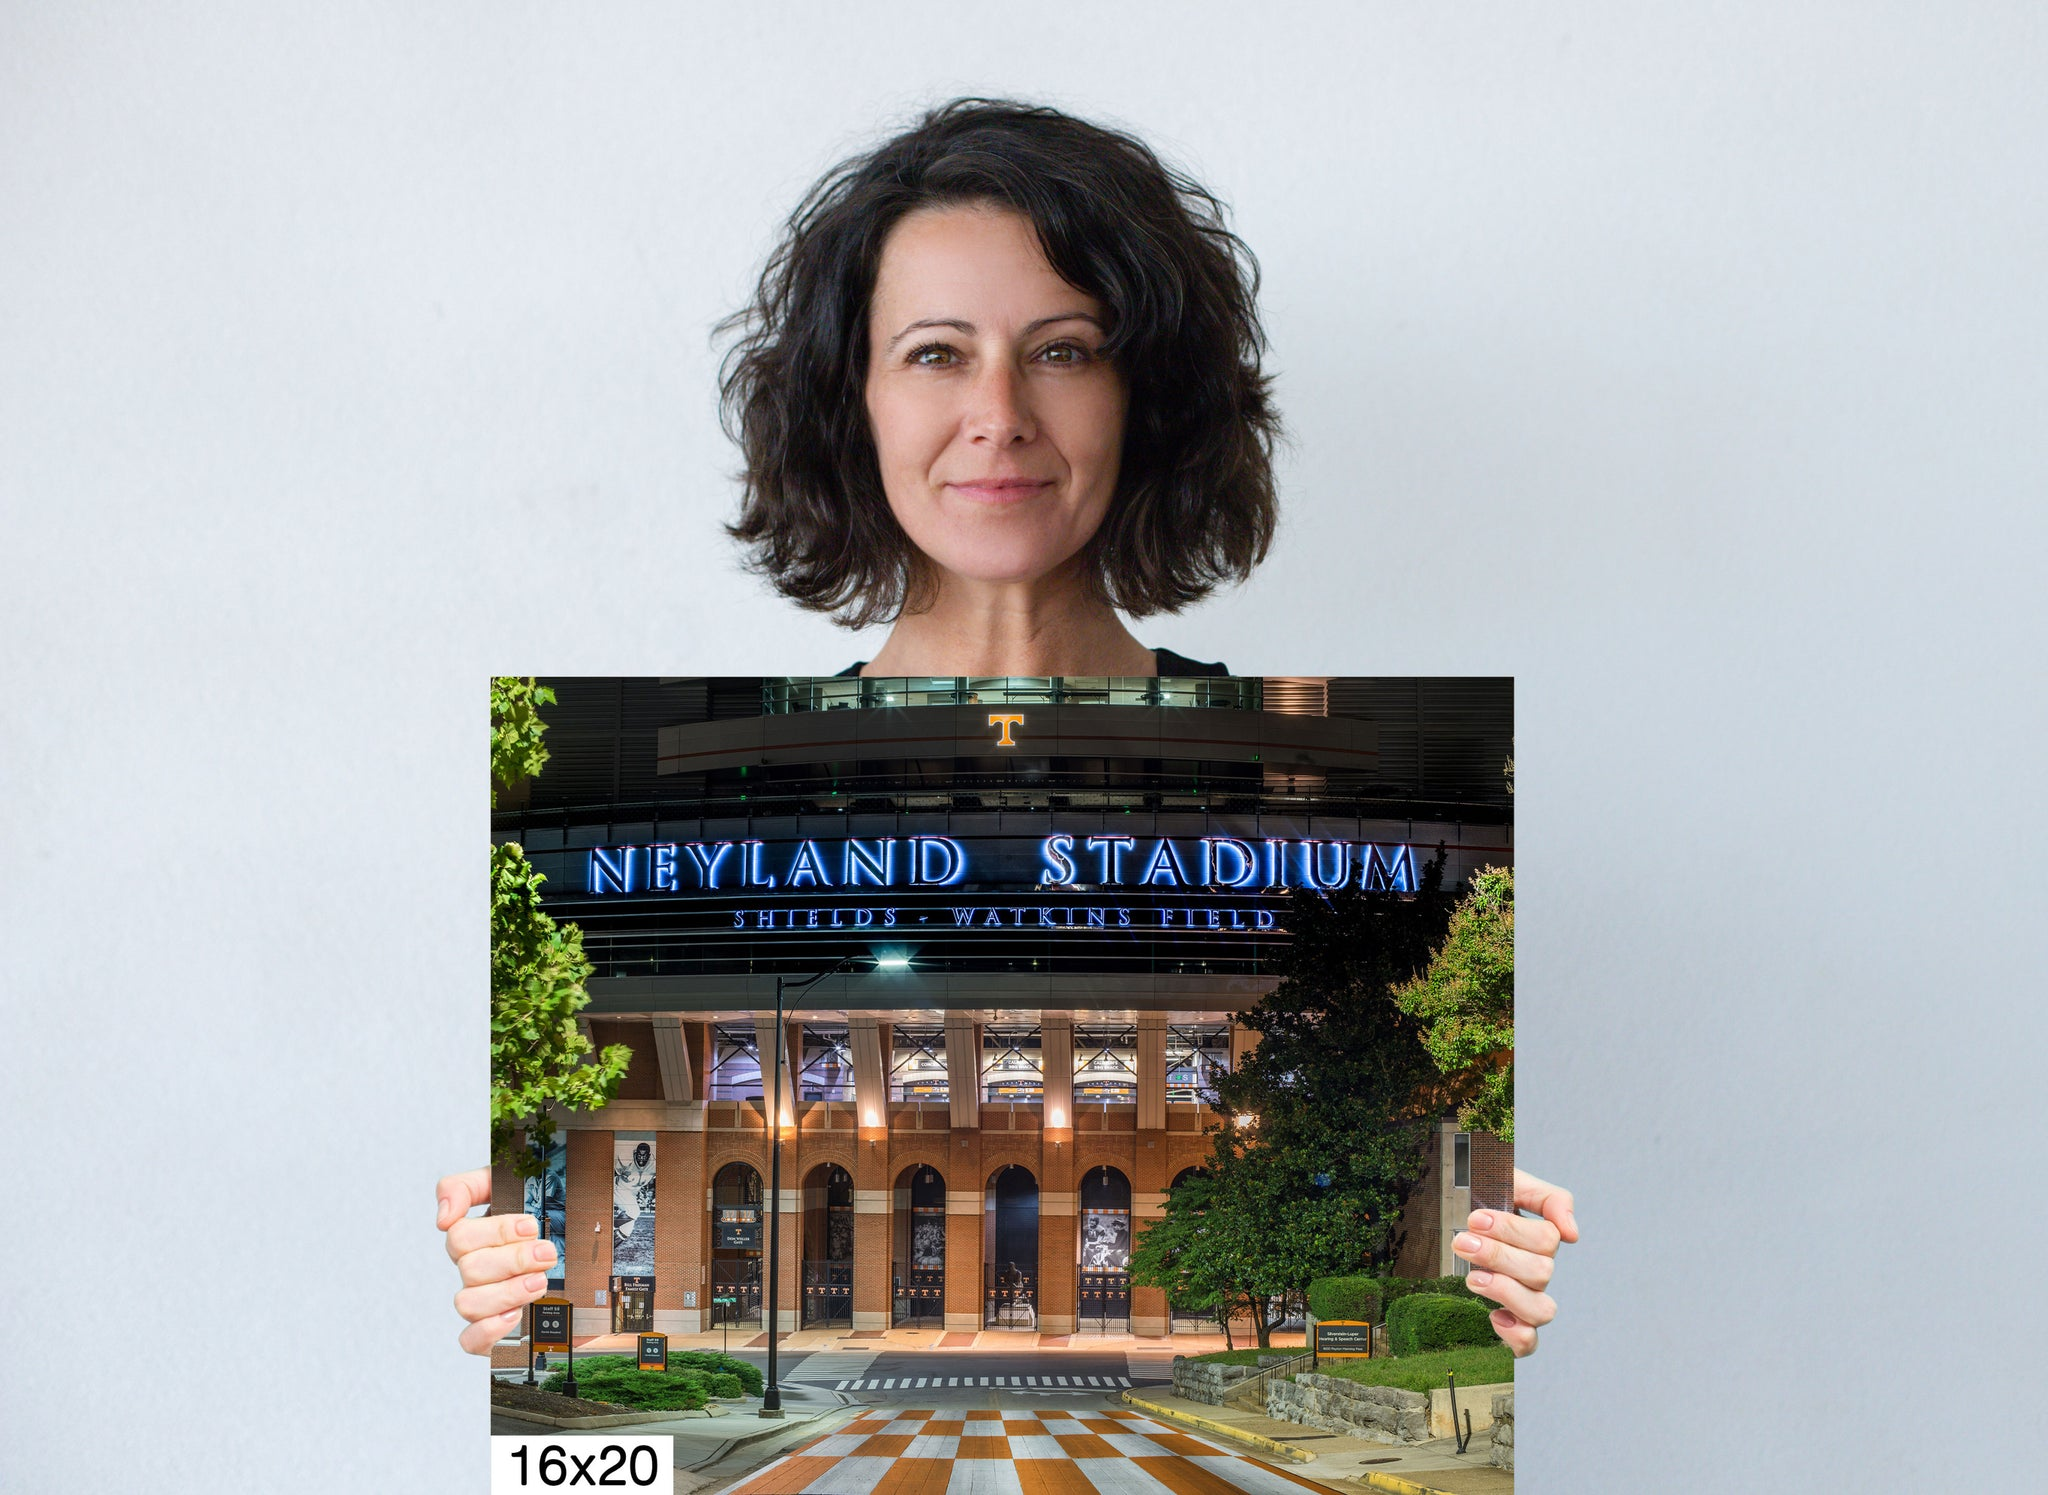 Neyland Stadium Knoxville City Photography Metal Print Wall Art Picture Home Decor Poster Landmark Bedroom Livingroom